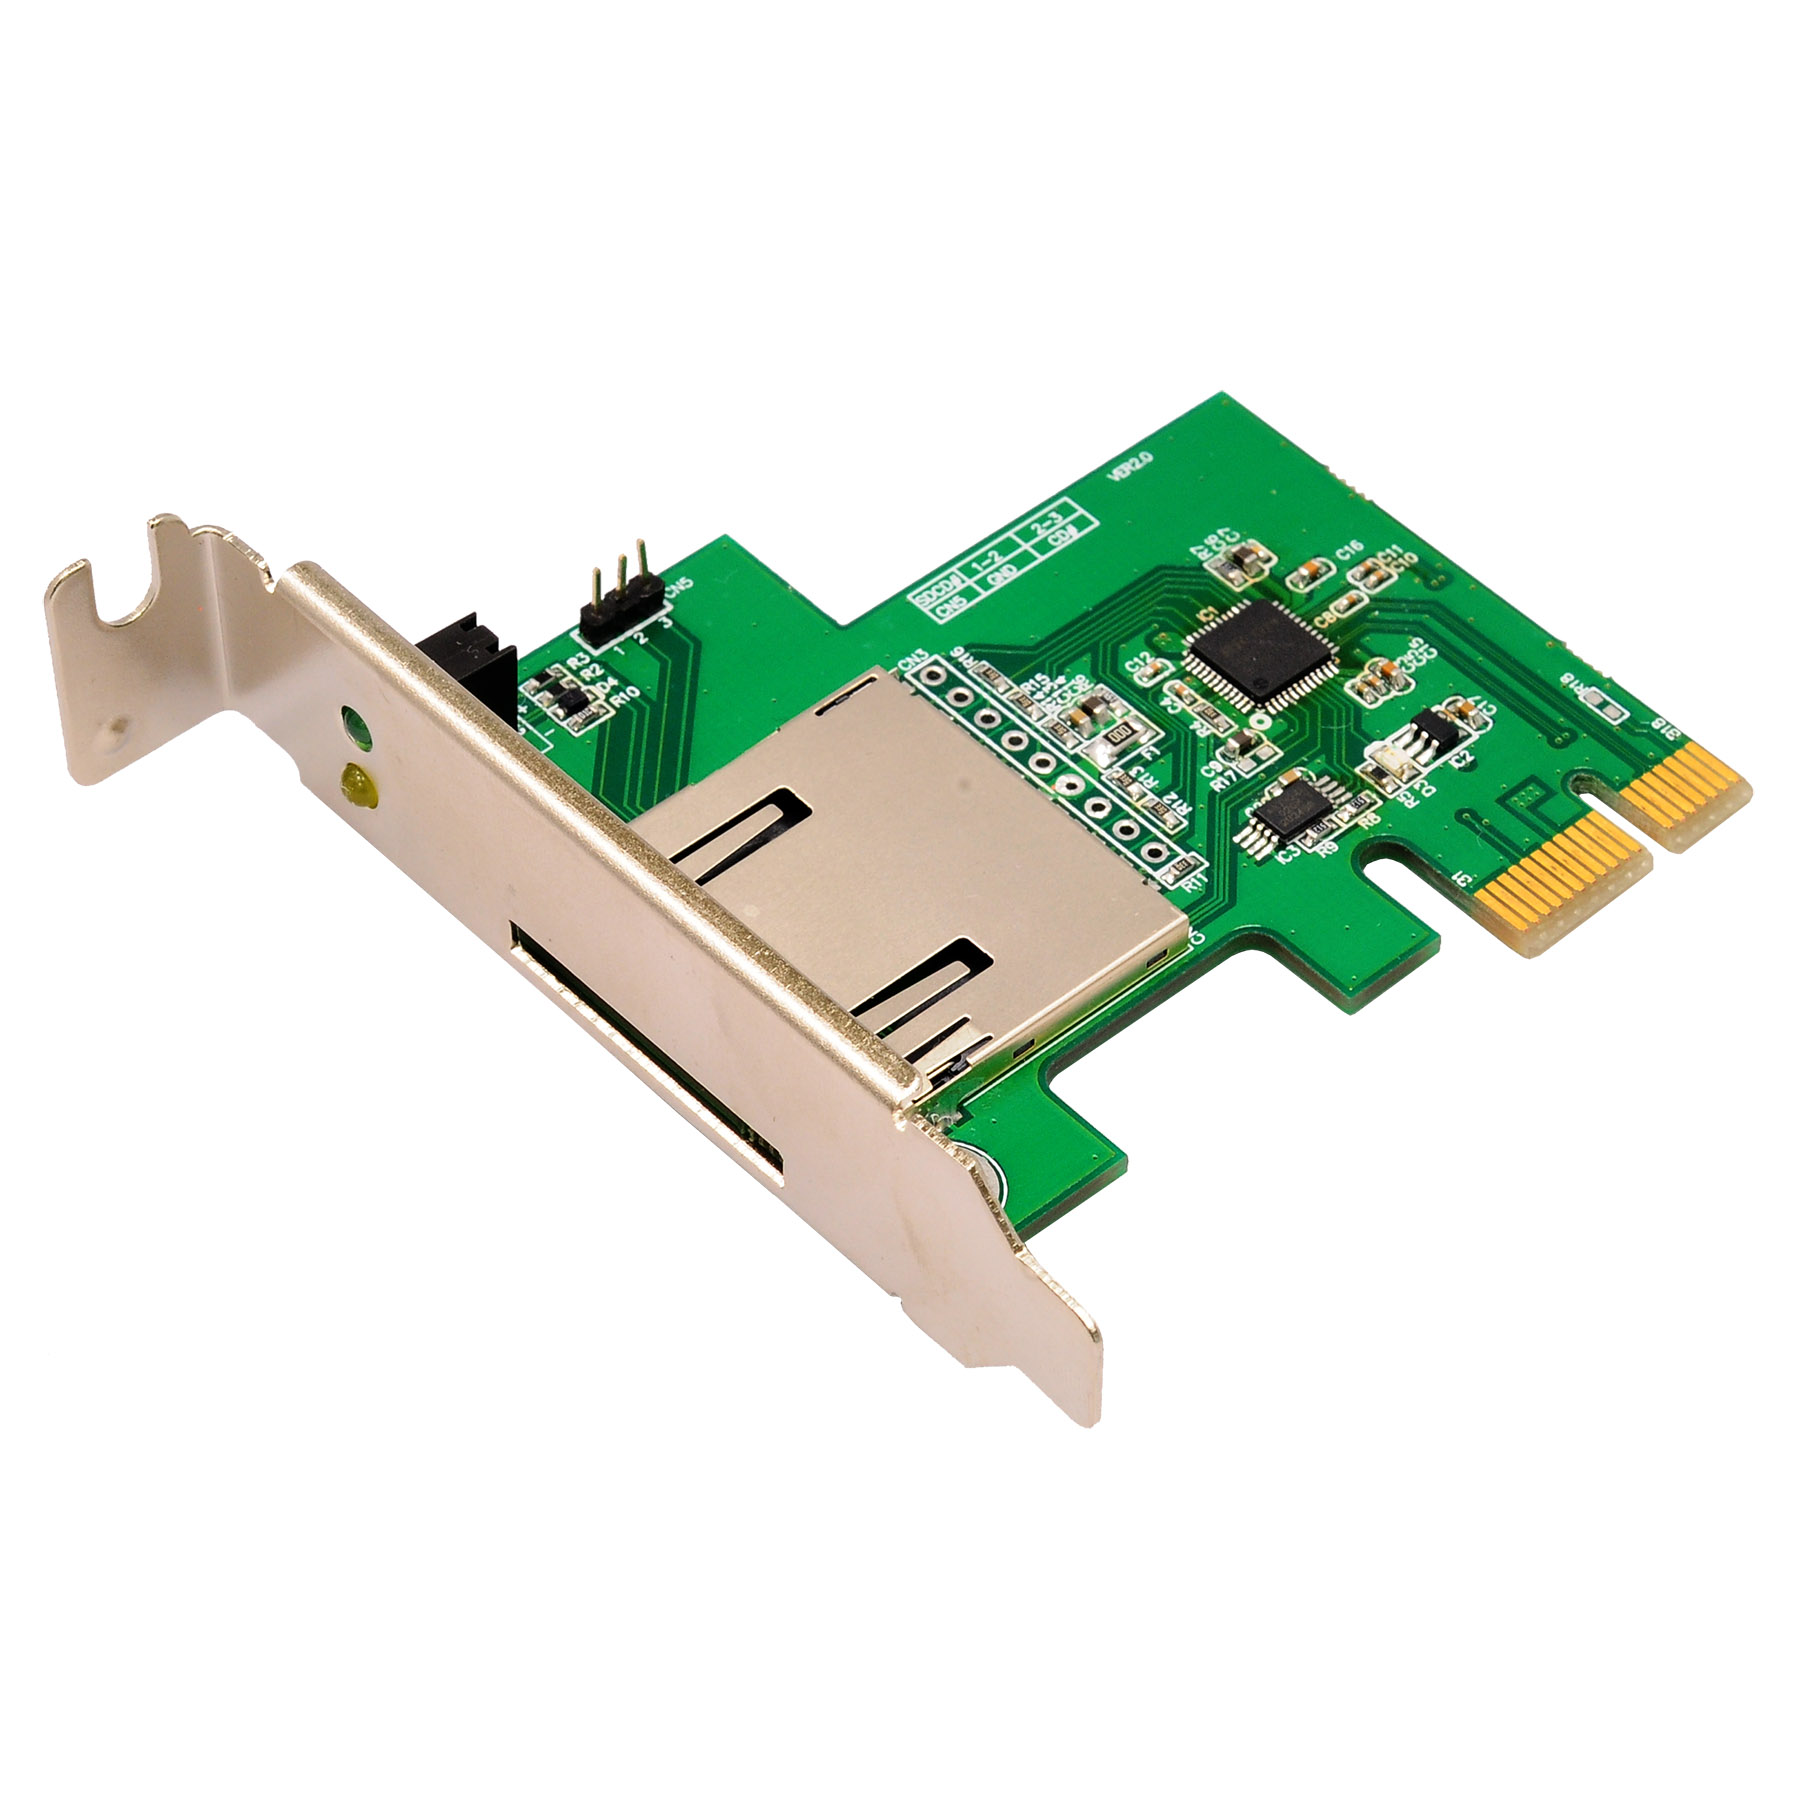 PCIe card reader example